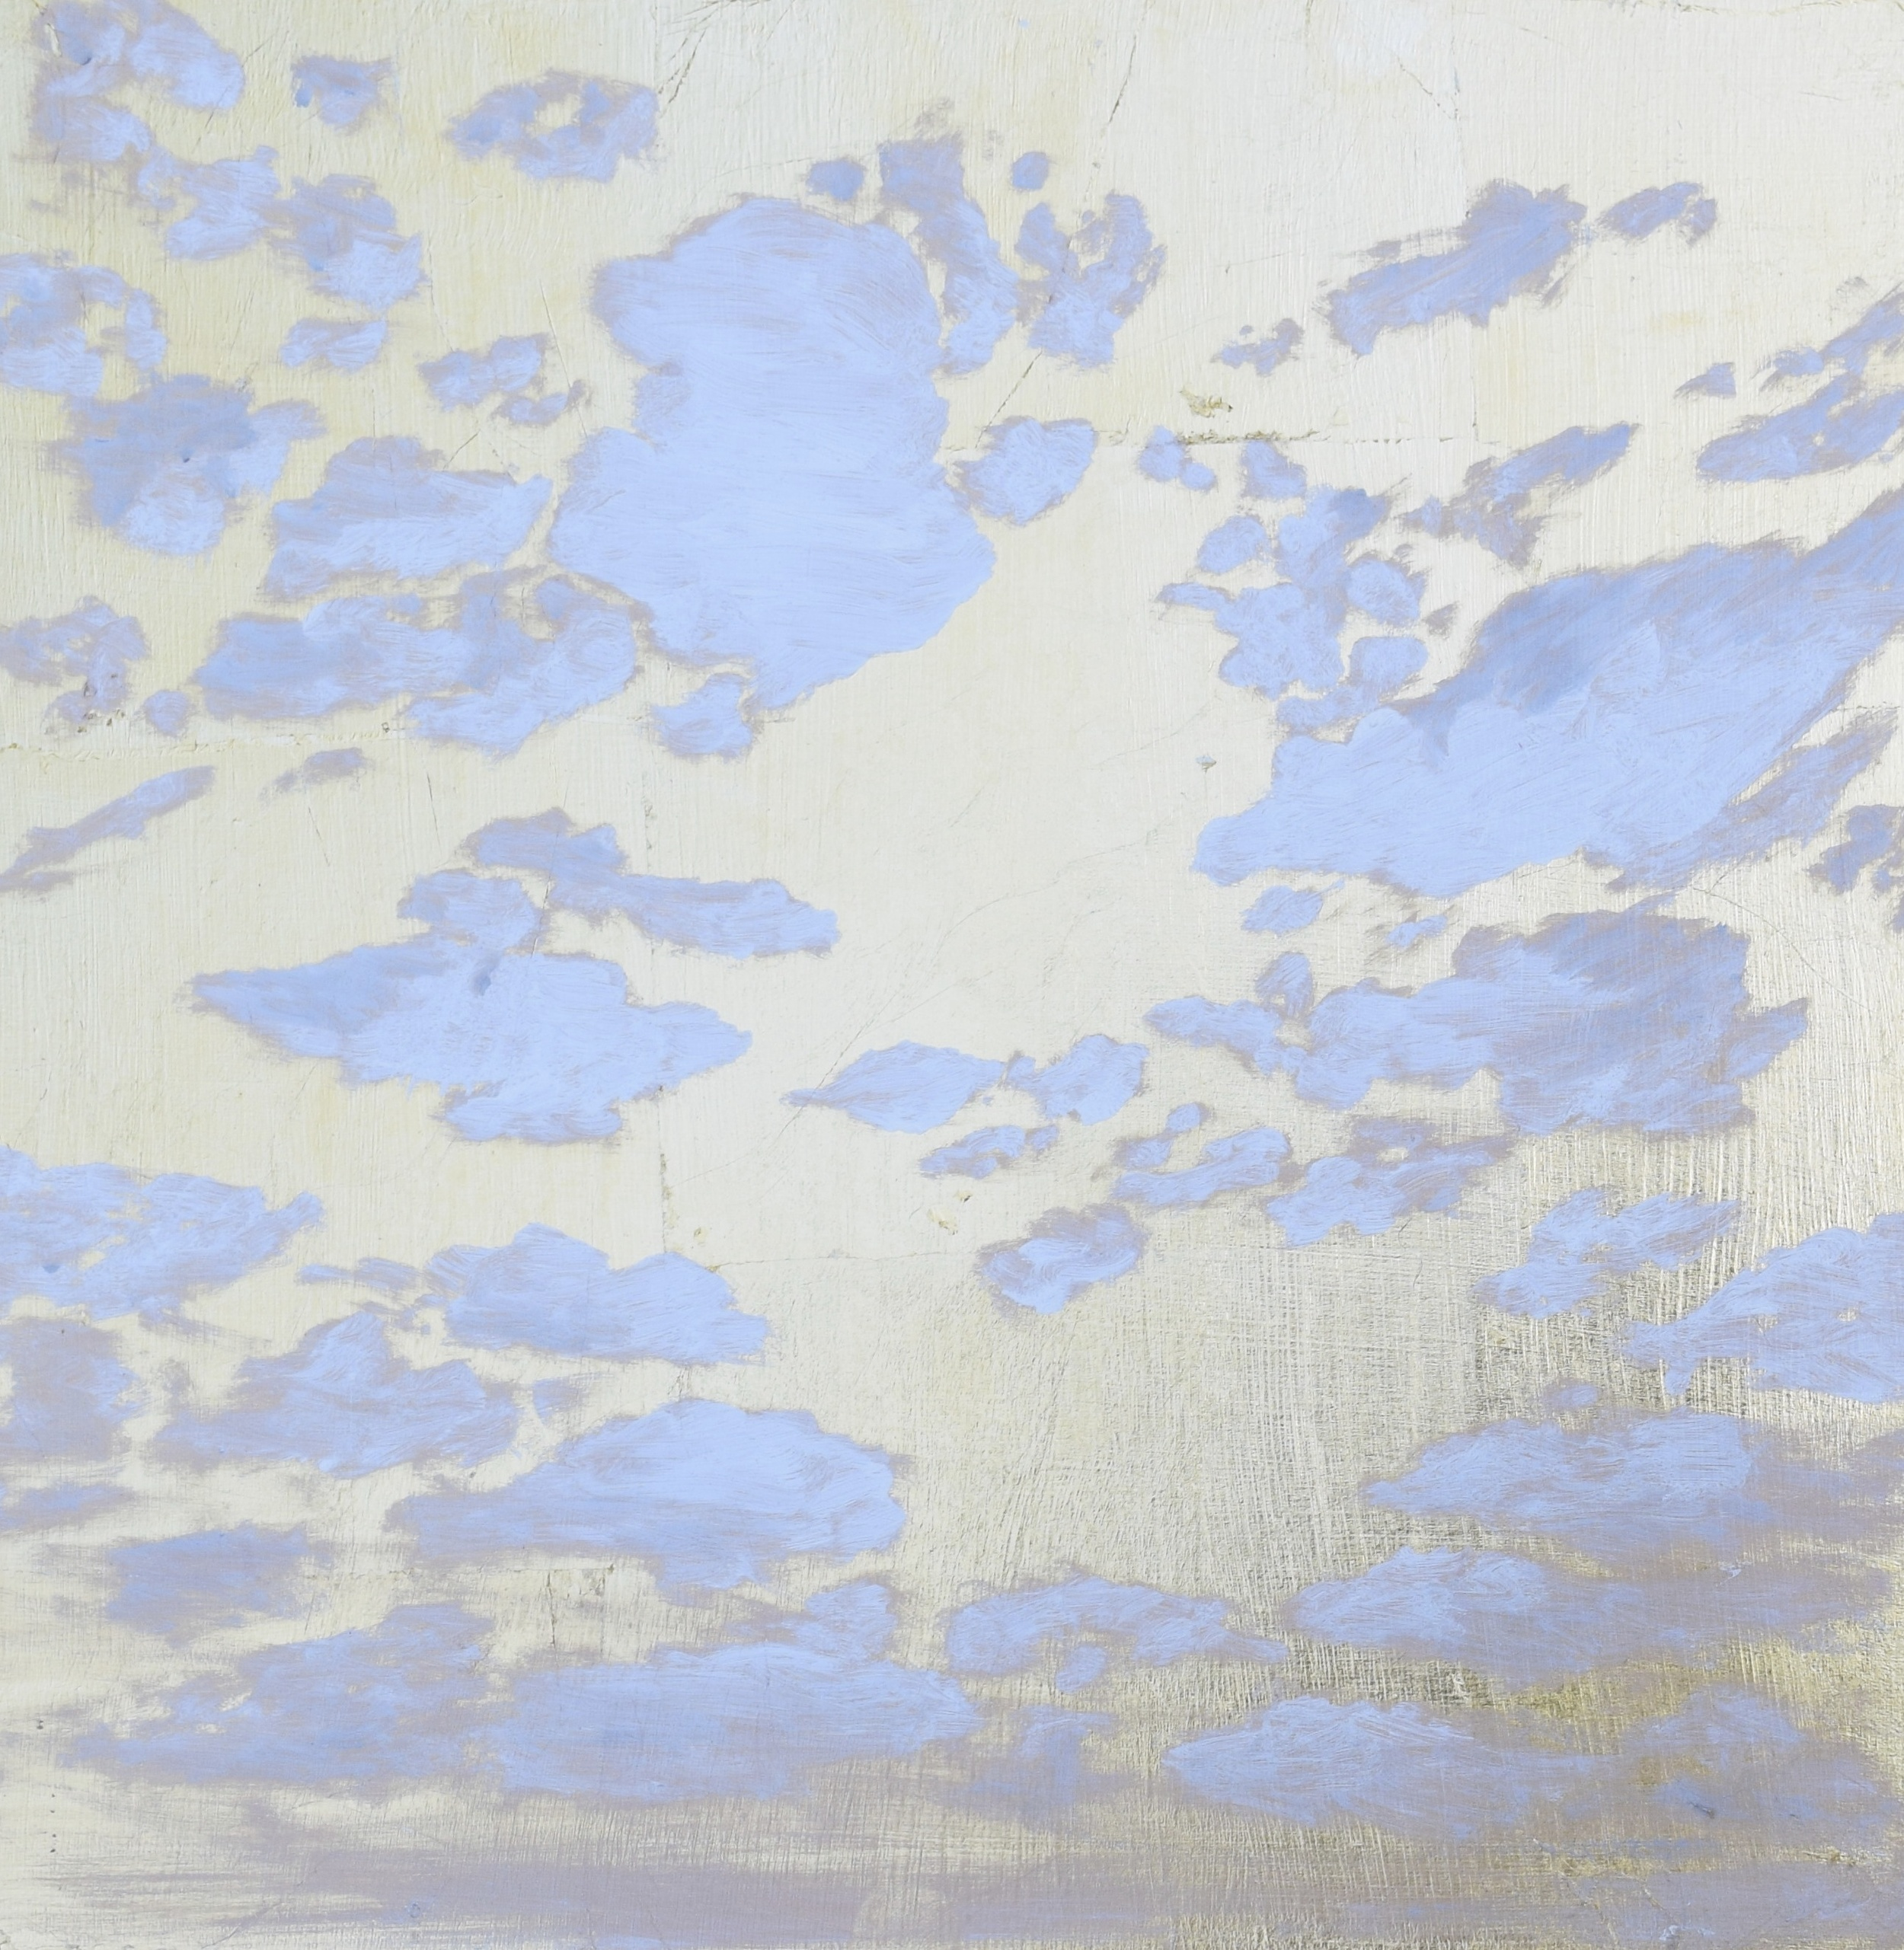 Cloud Study for Ivy